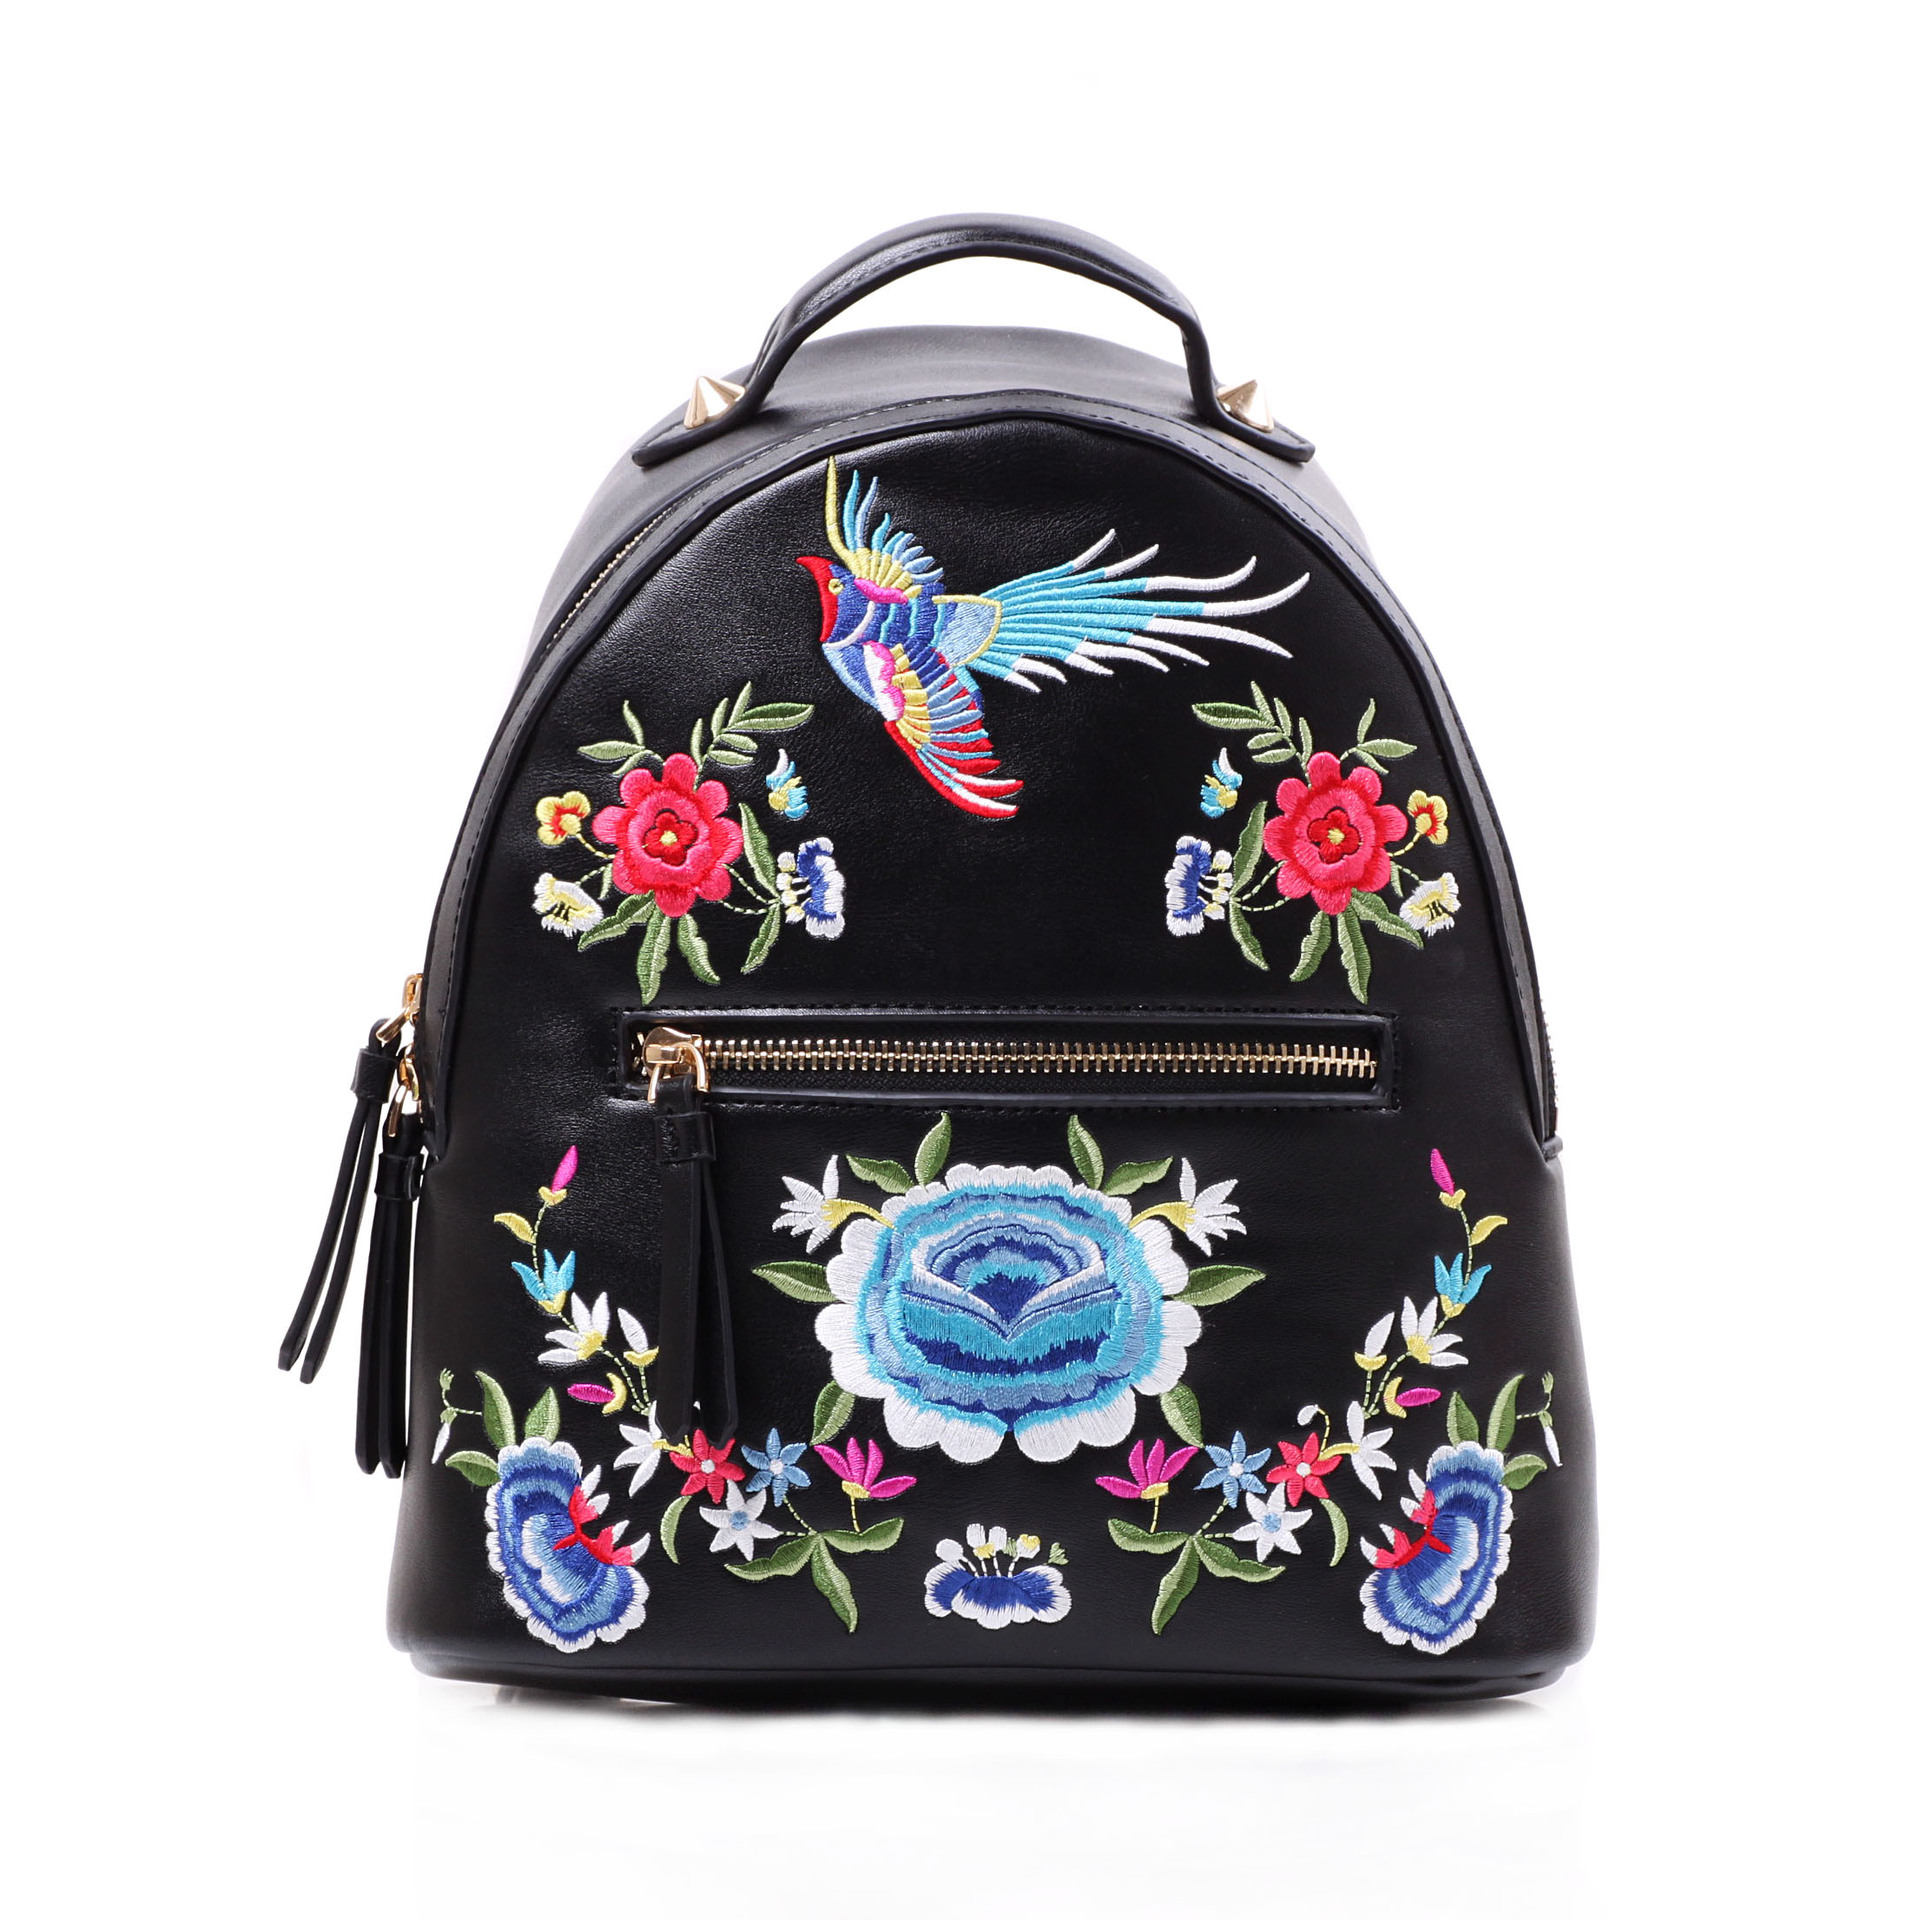 f4df7a5c8471 Ethnic Embroidered Backpack for Girls Folk Phoenix Bag Ladies Flower  Embroidery Backpack Small Back Pack Women s Casual Daypacks